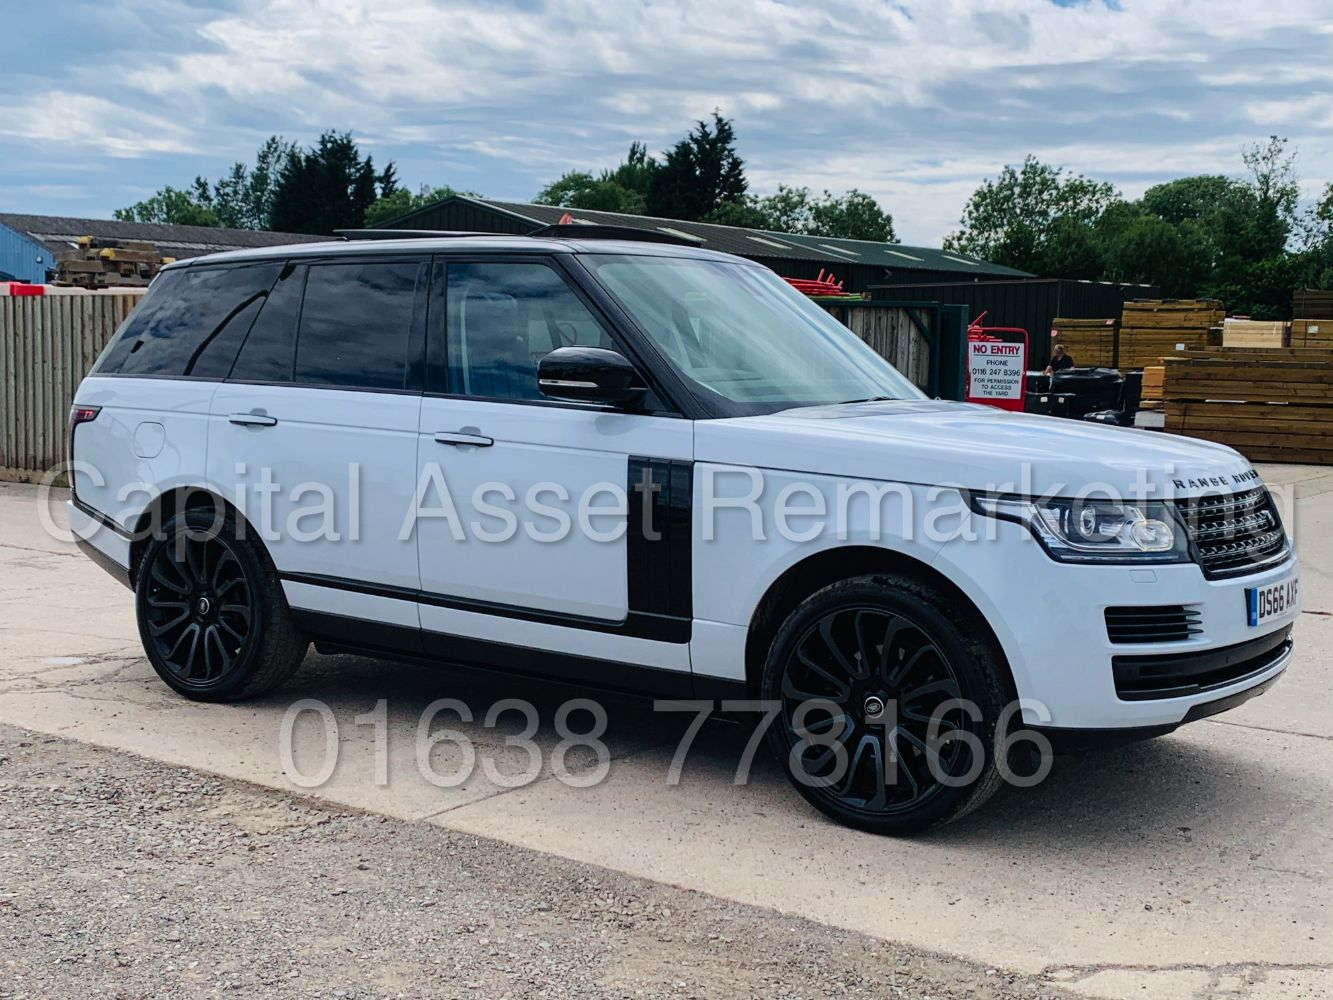 2017 Range Rover Vogue SE - 2017 Land Rover Discovery *HSE* - 2015 Range Rover Sport *HSE* + Many More: Cars, Commercials & 4x4's !!!